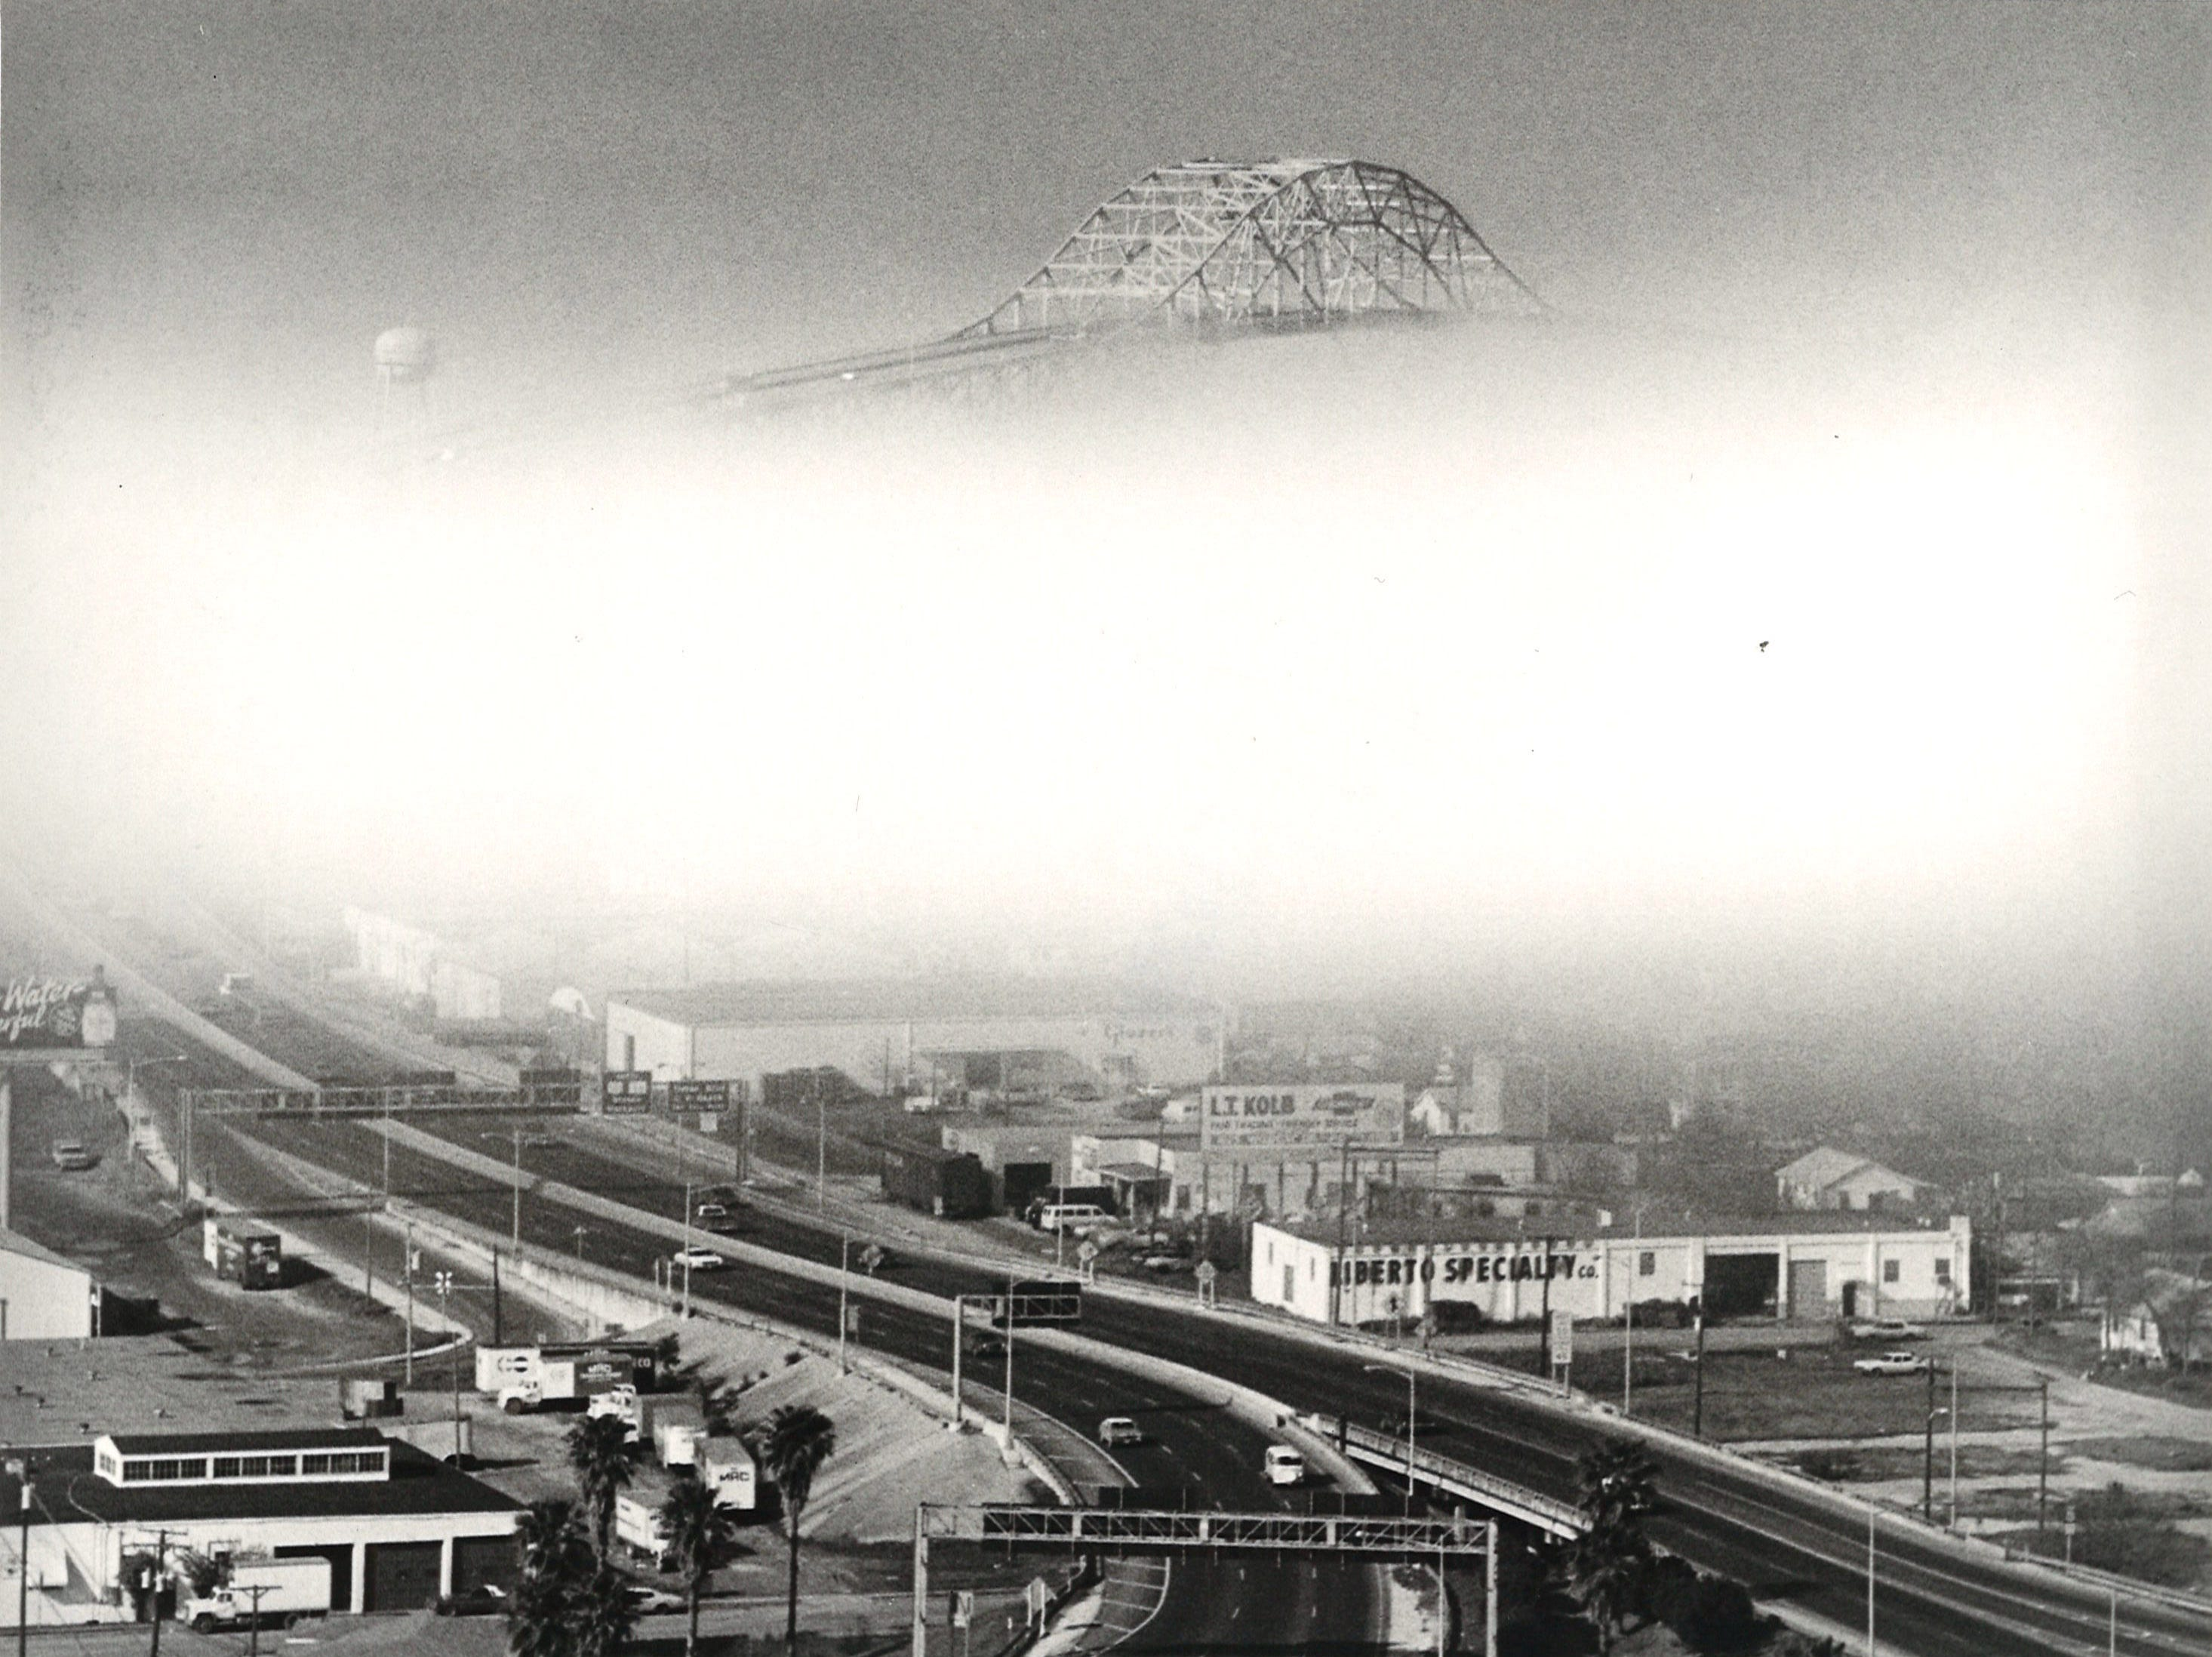 The Harbor Bridge is barely visible in downtown Corpus Christi in heavy fog in February 1980.